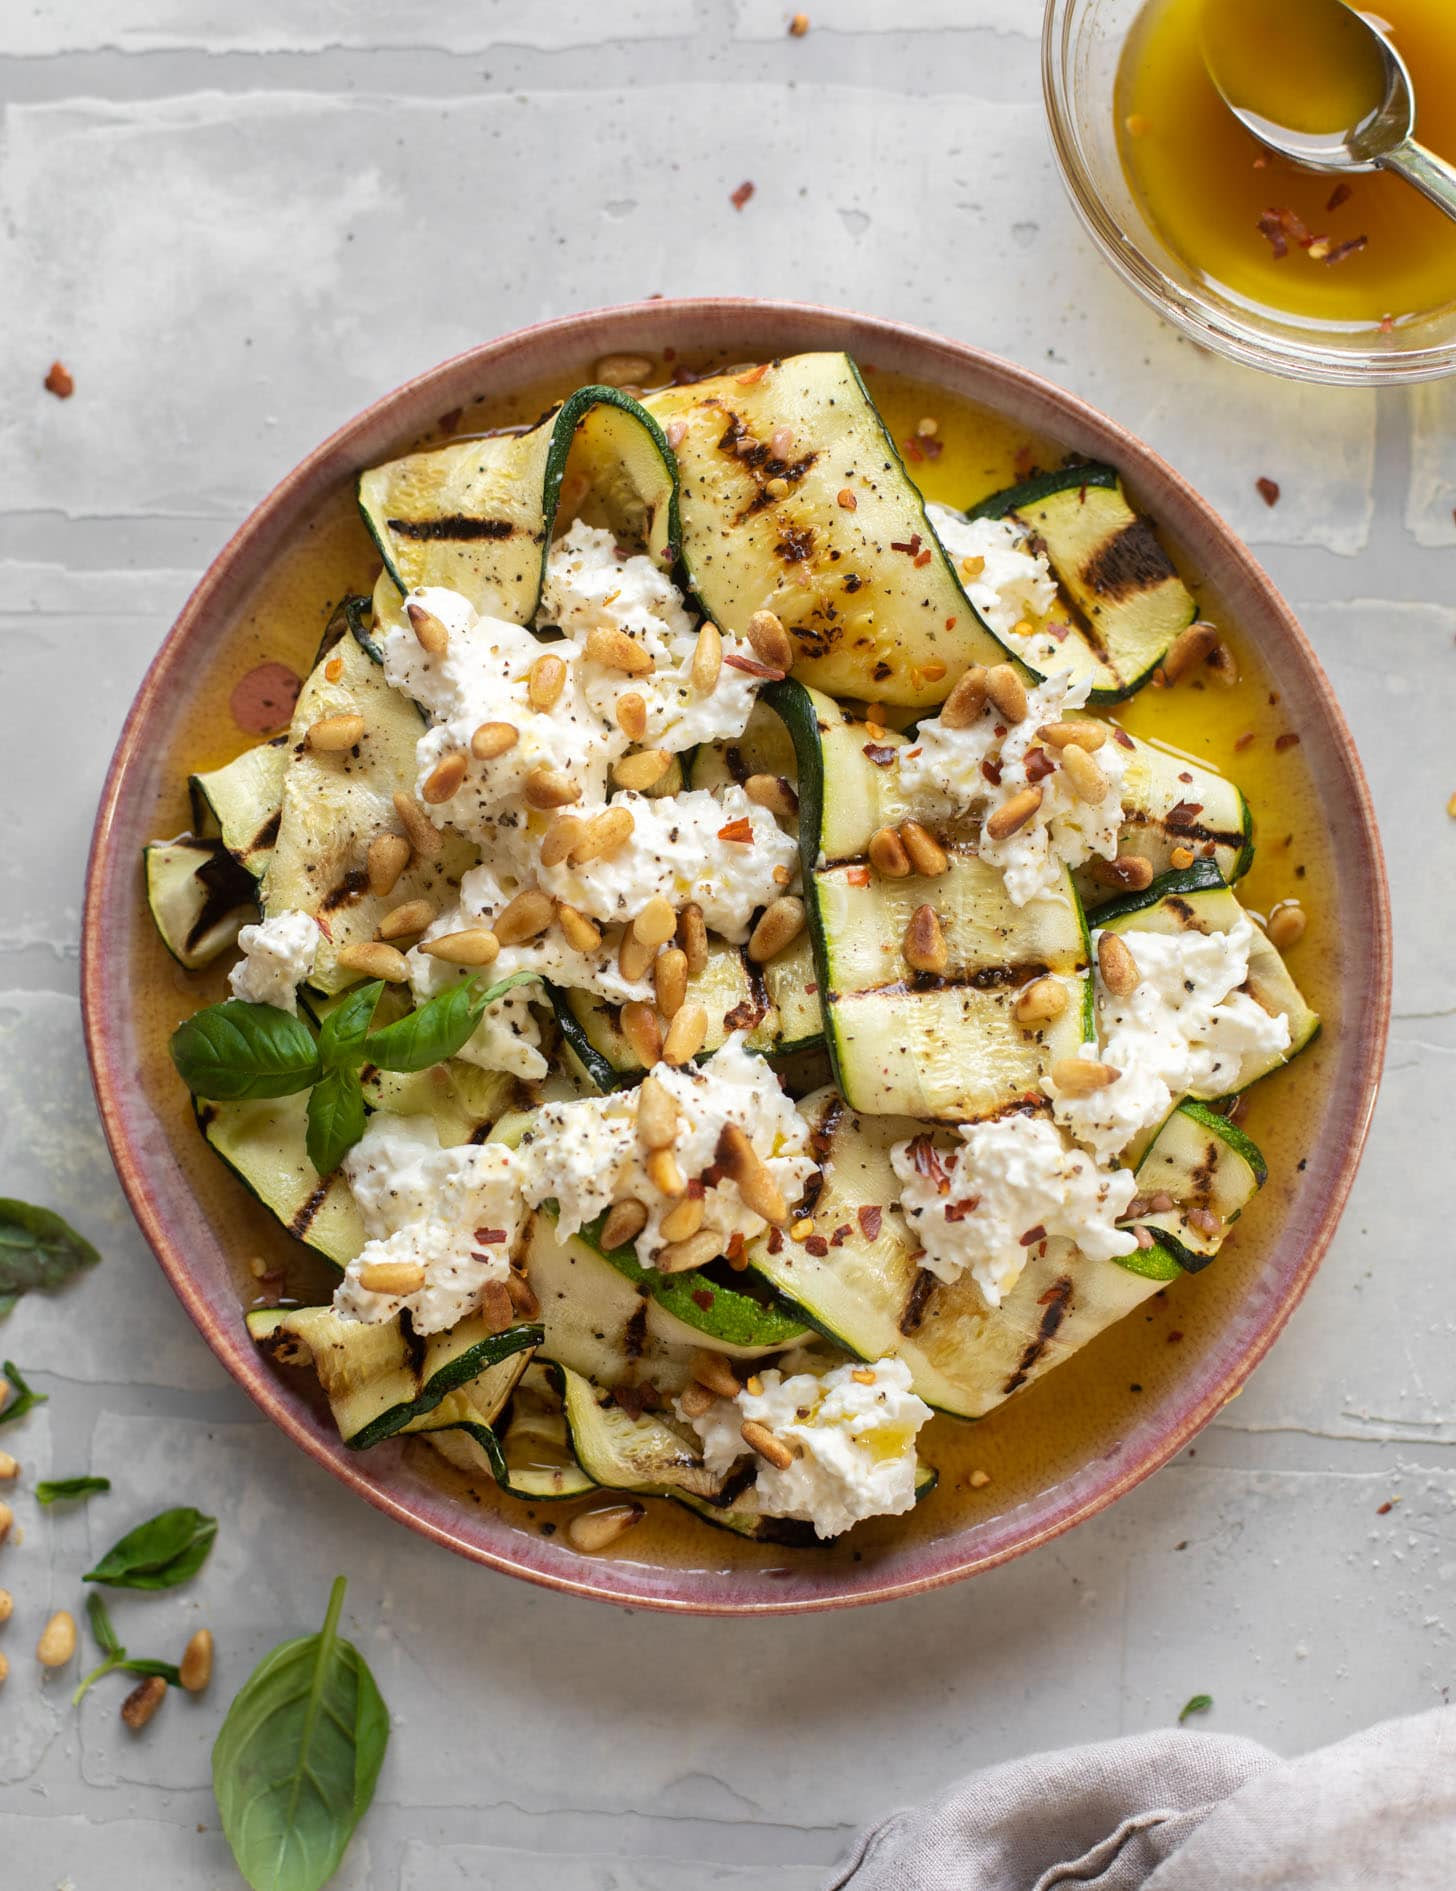 grilled zucchini with burrata and pine nuts